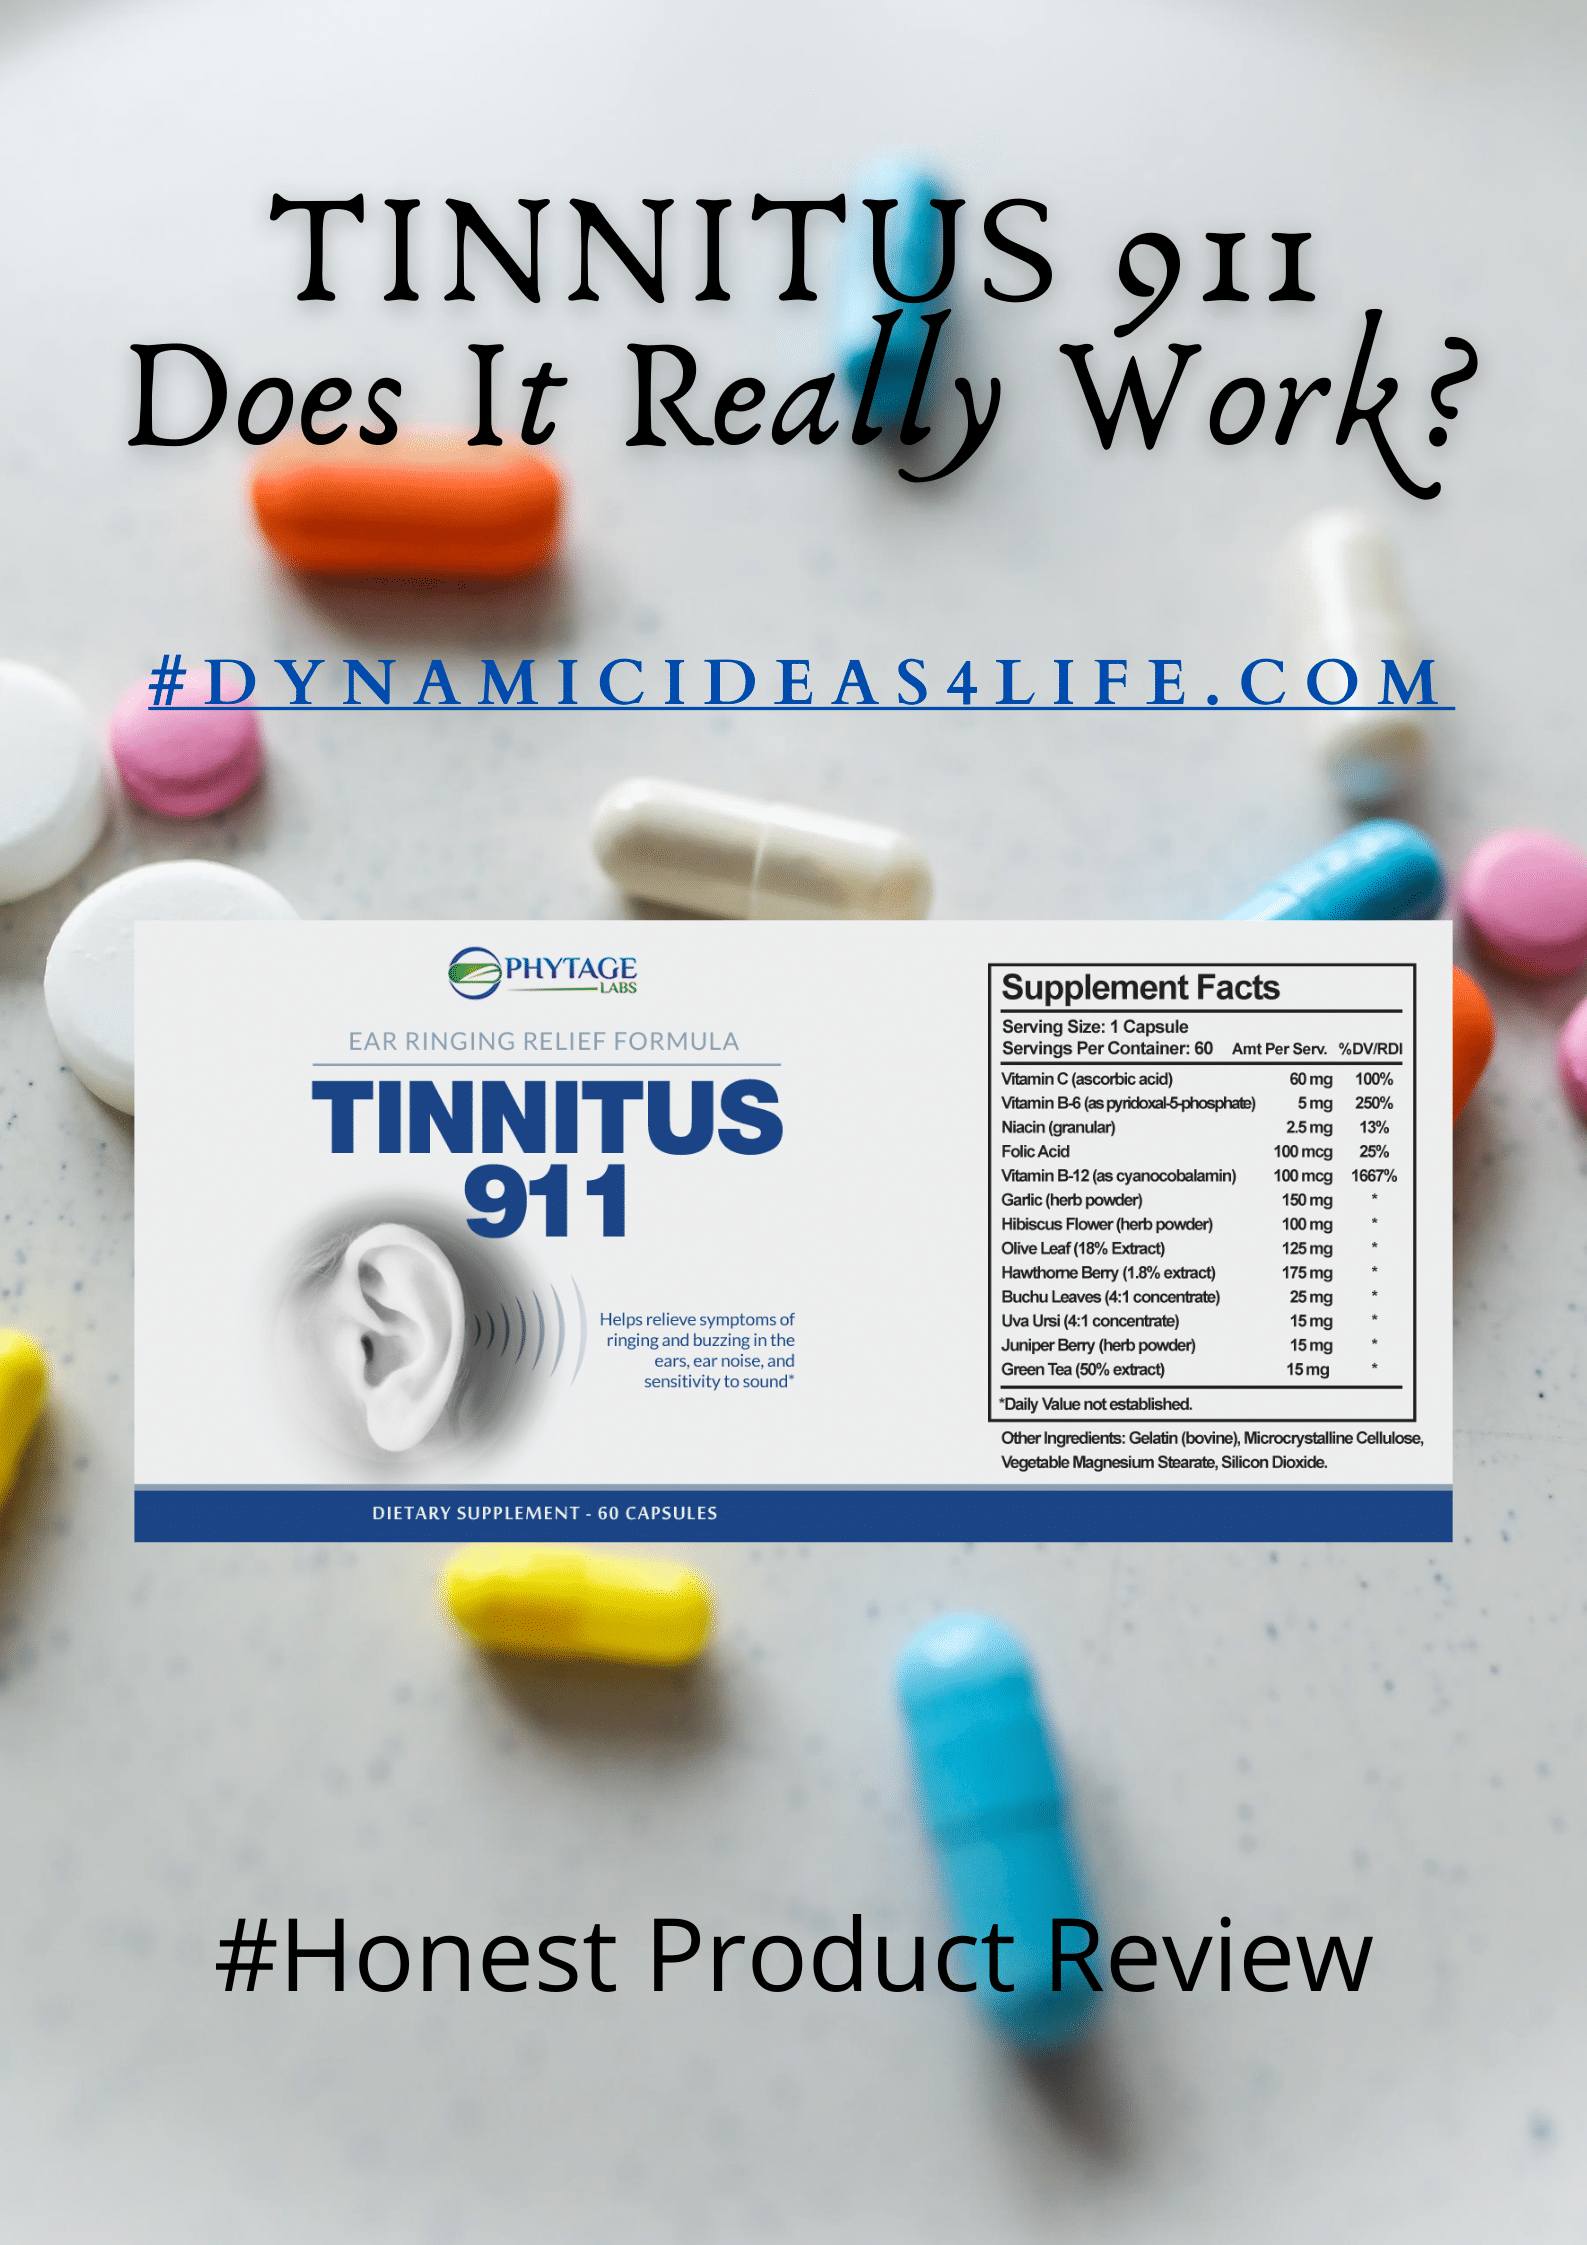 Tinnitus 911 Supplement Does it Work?